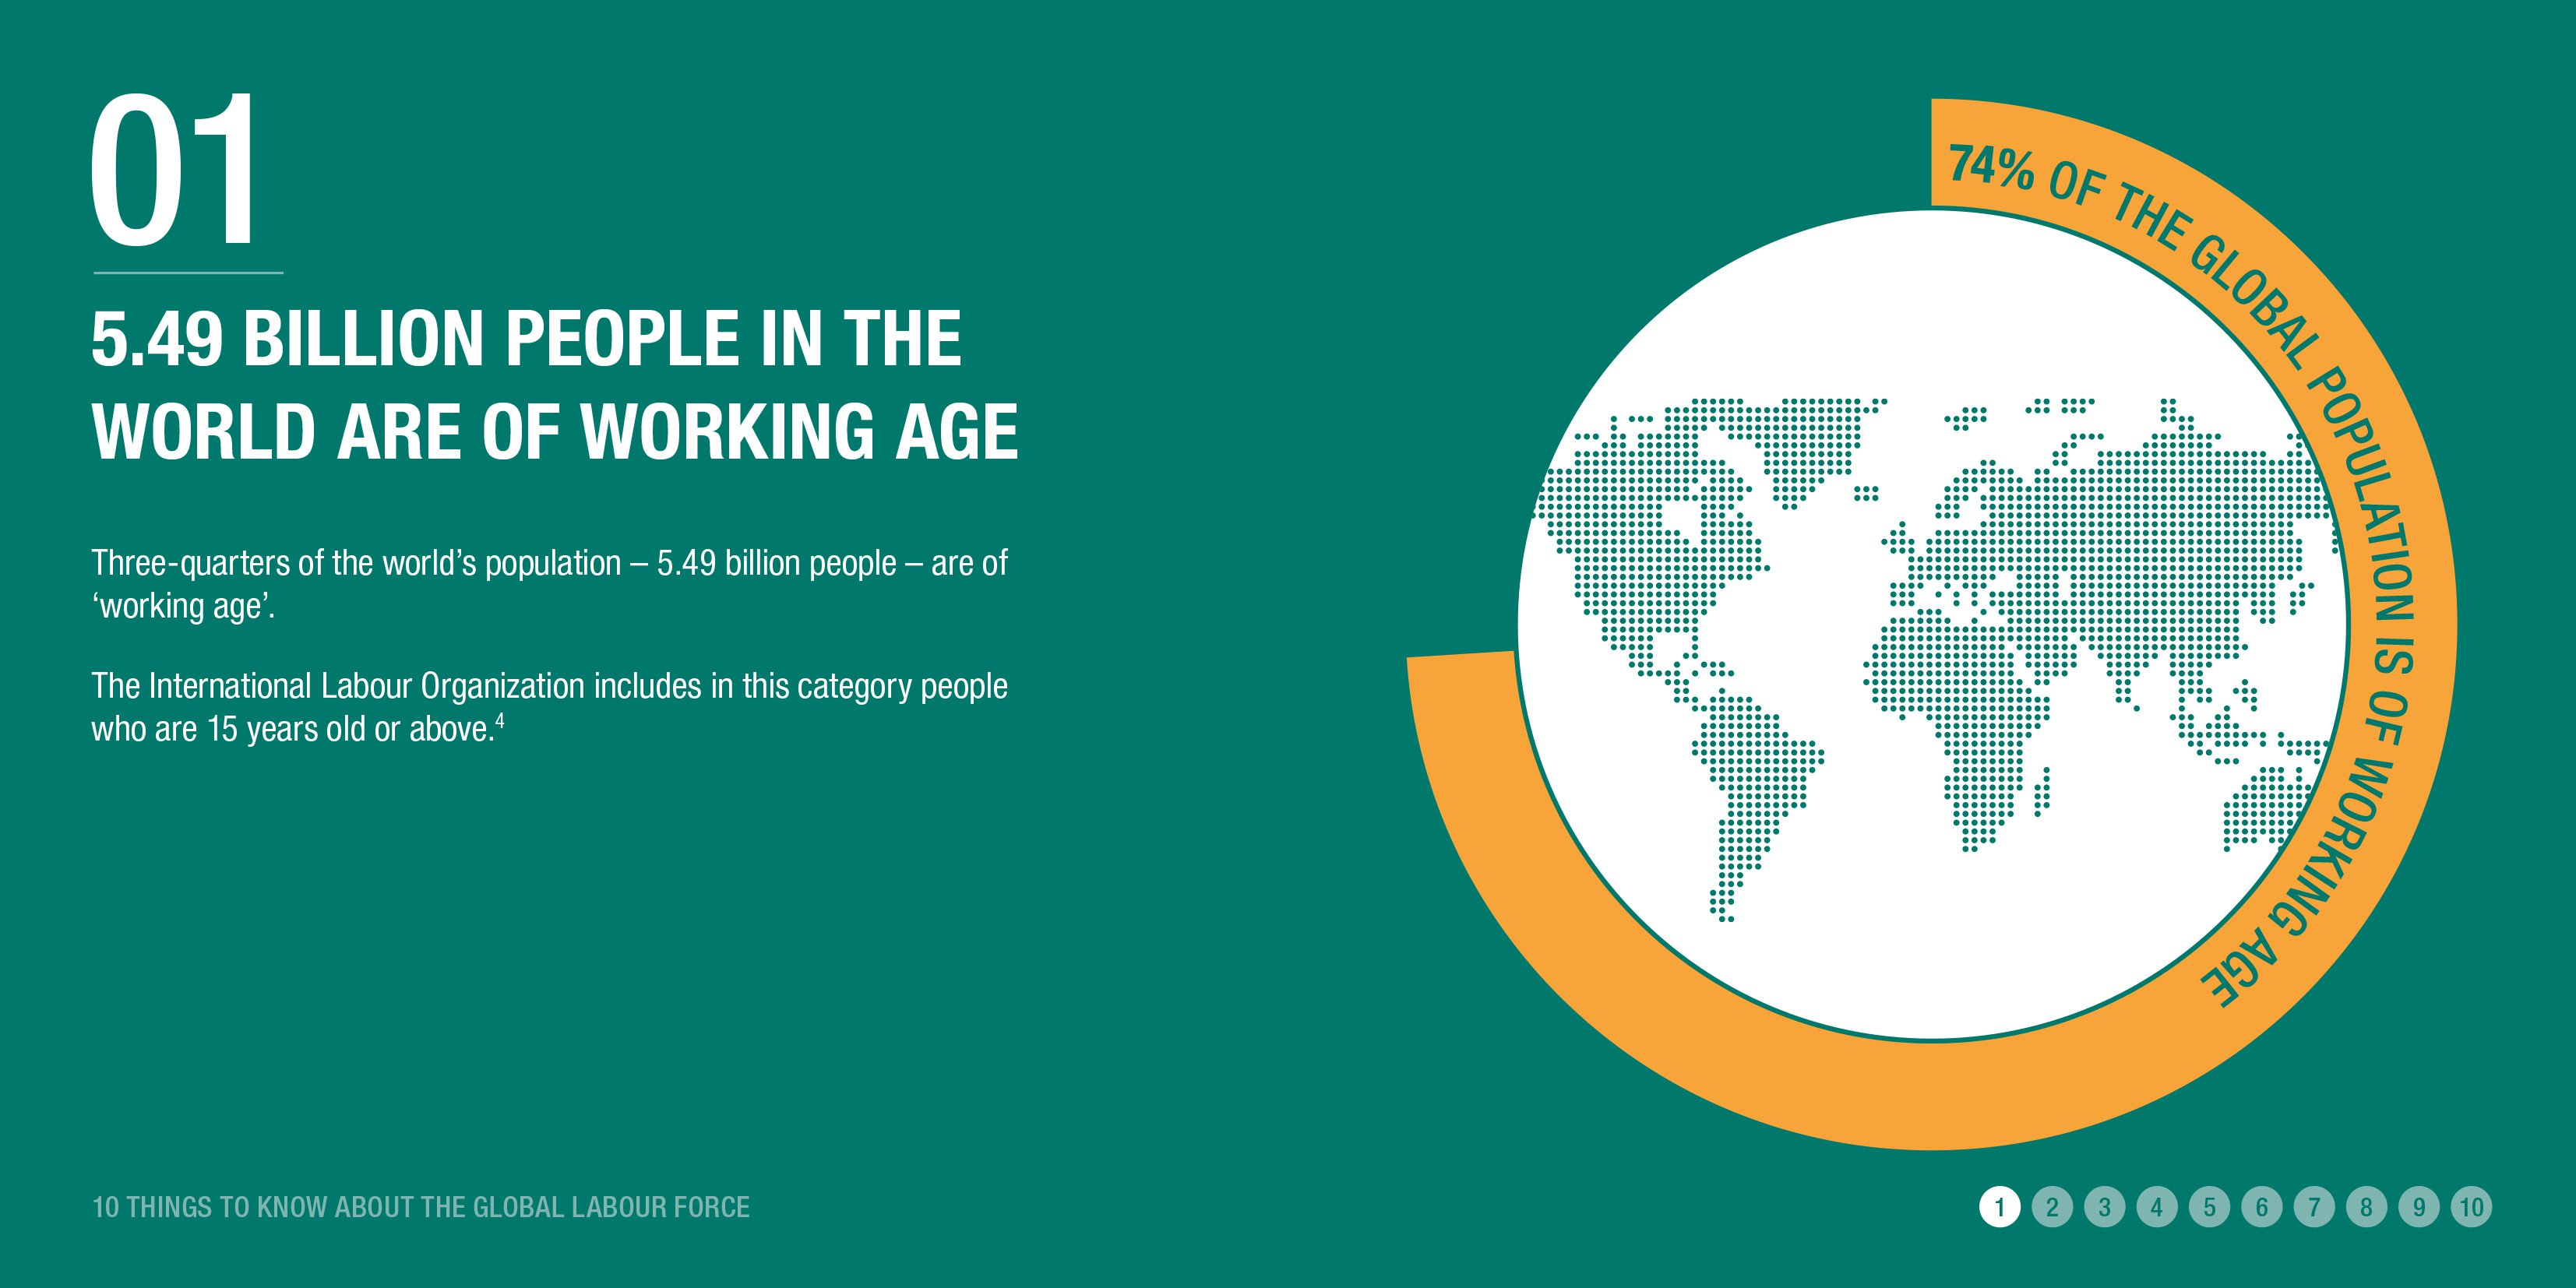 5.49 billion people in the world are of working age